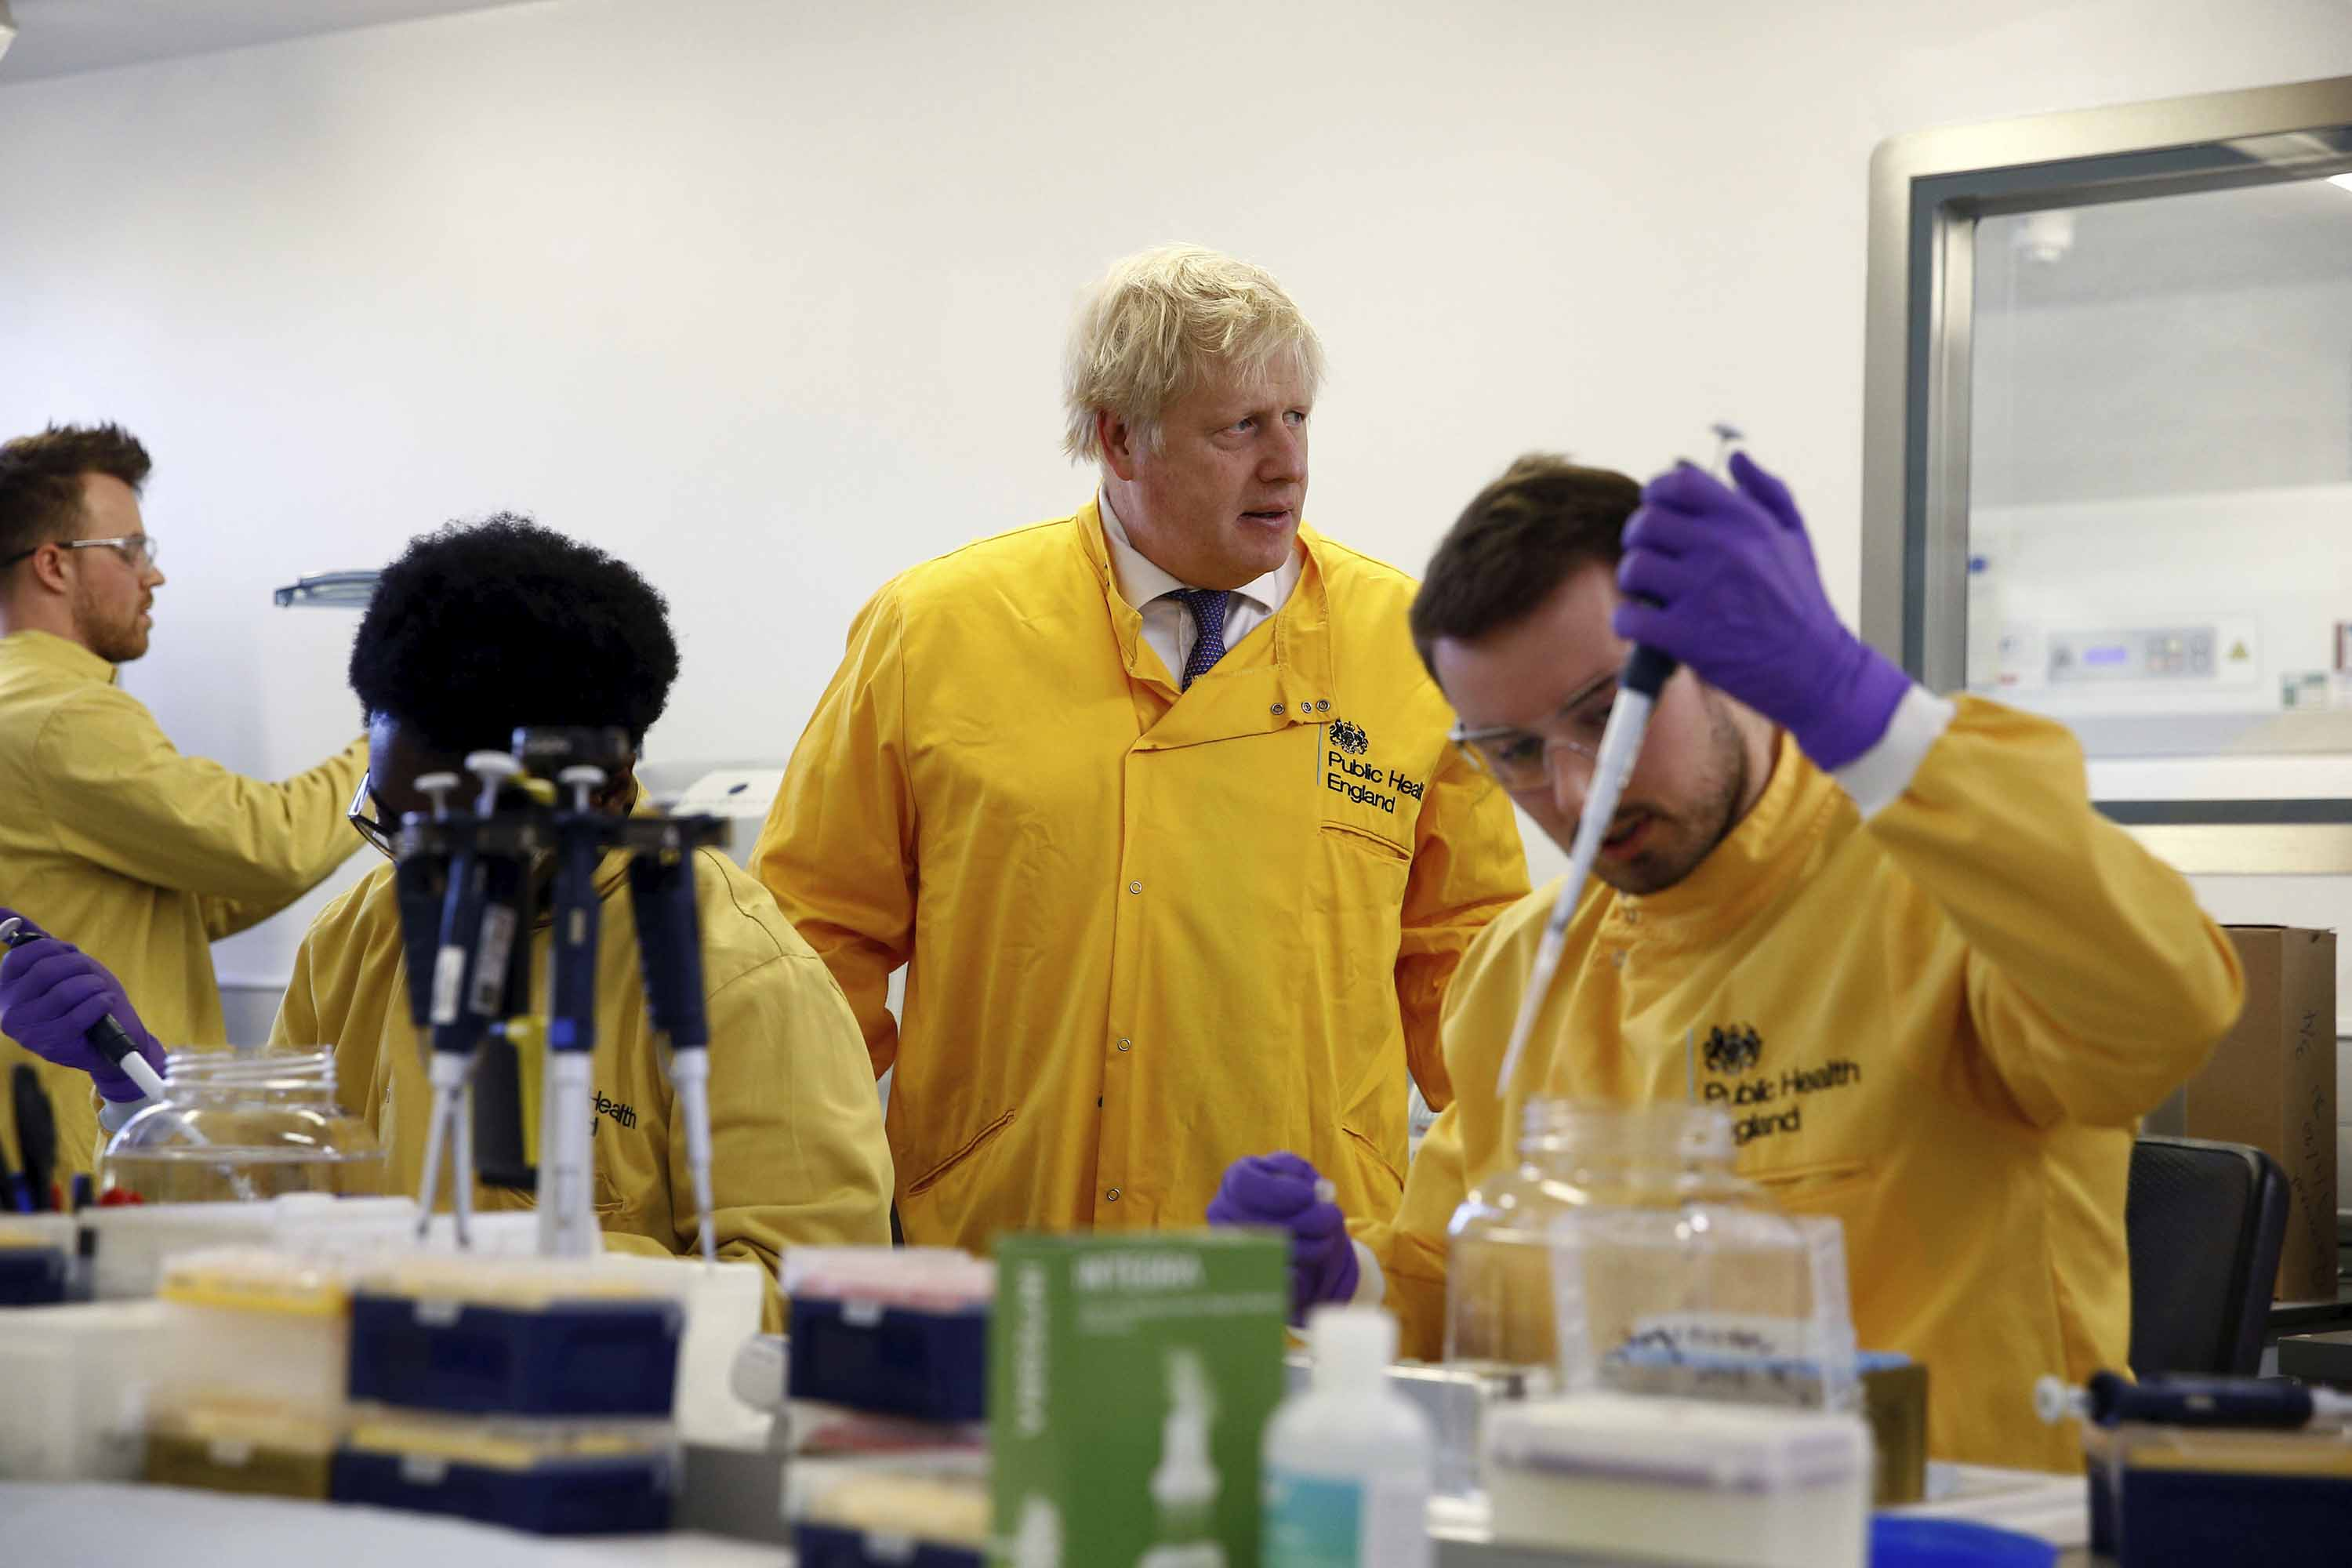 Prime Minister Boris Johnson visits a laboratory at the Public Health England National Infection Service in north London, after more coronavirus patients were identified in the country on Sunday.